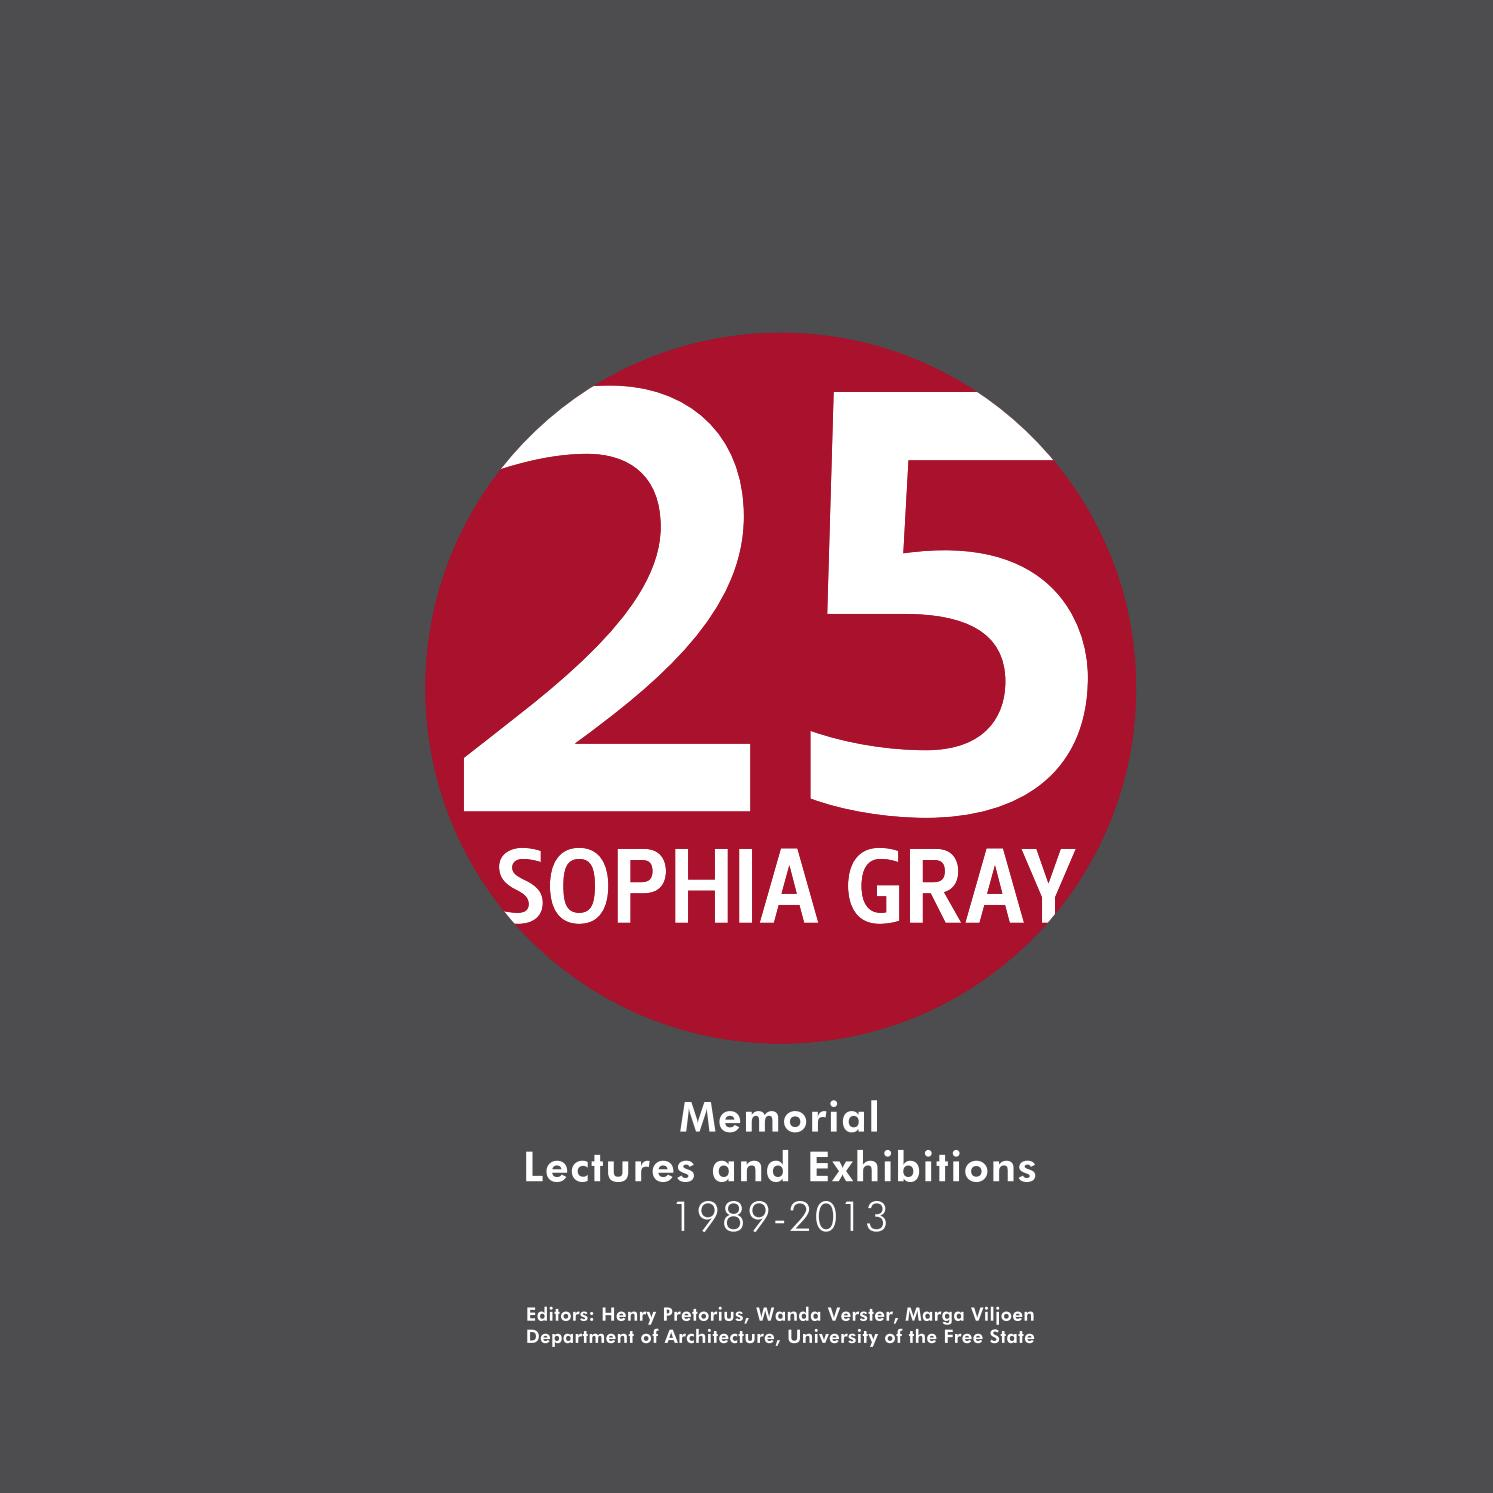 Sophia gray Vol 1